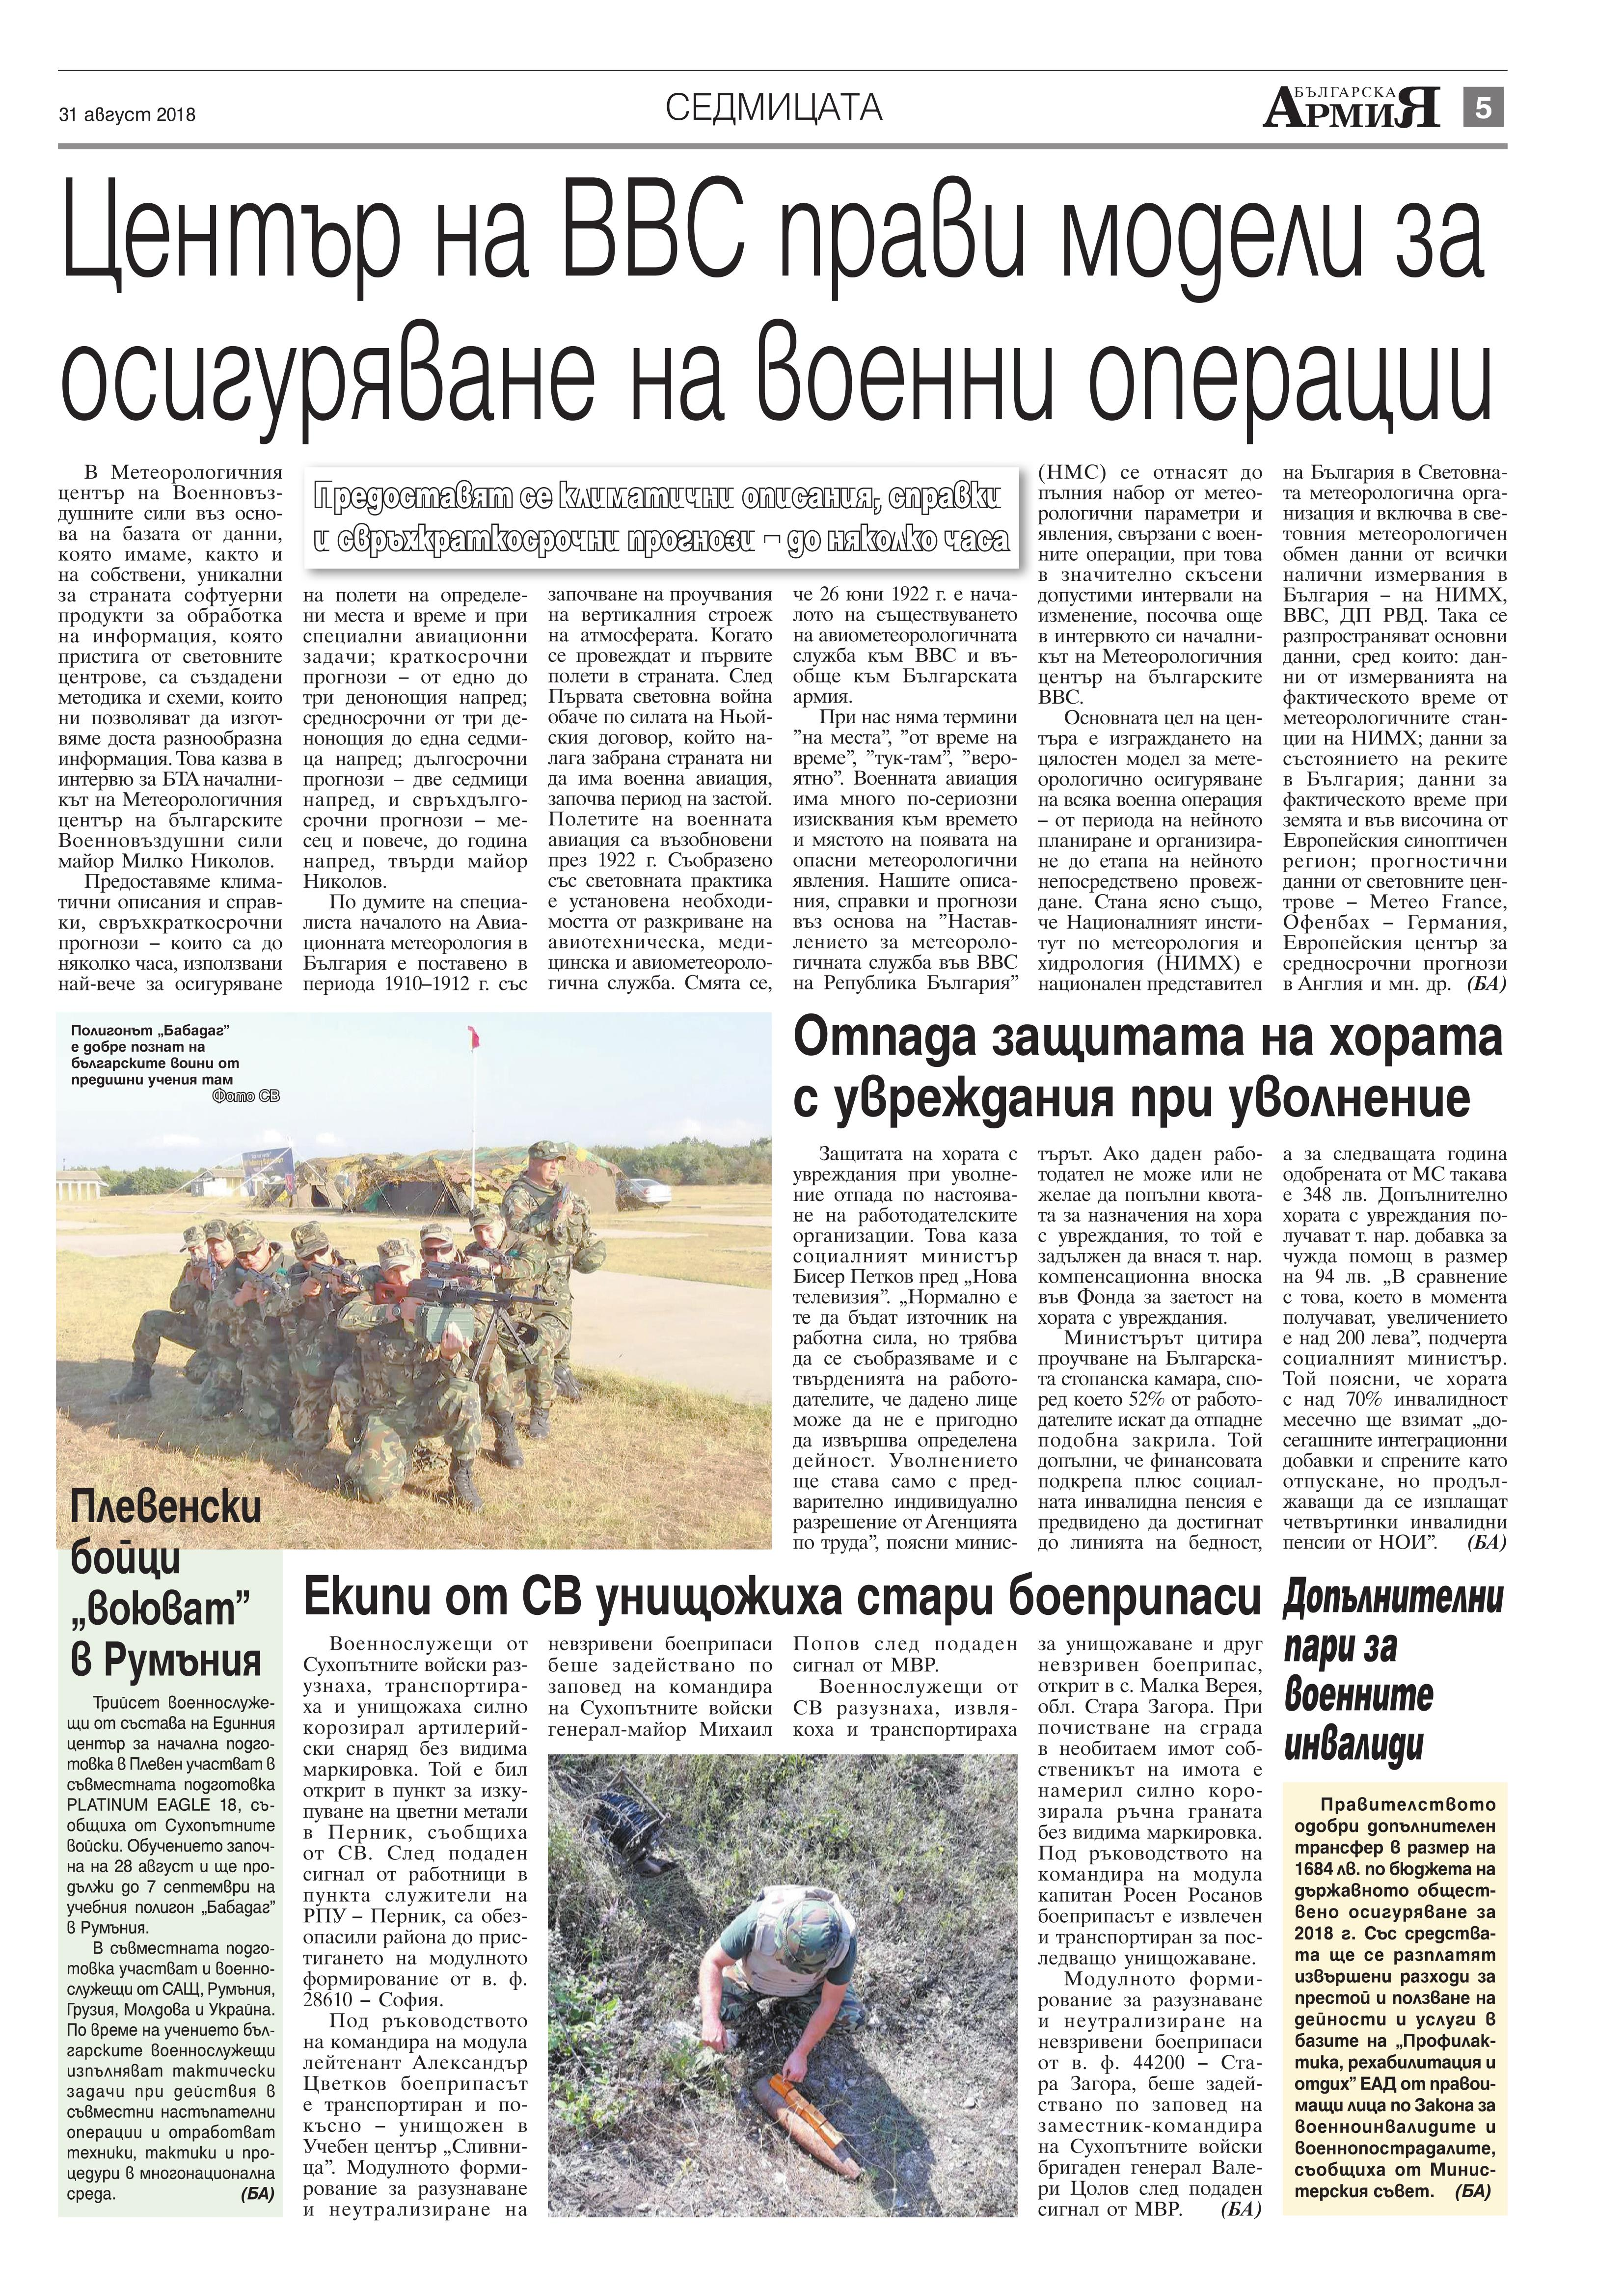 https://armymedia.bg/wp-content/uploads/2015/06/05.page1_-61.jpg